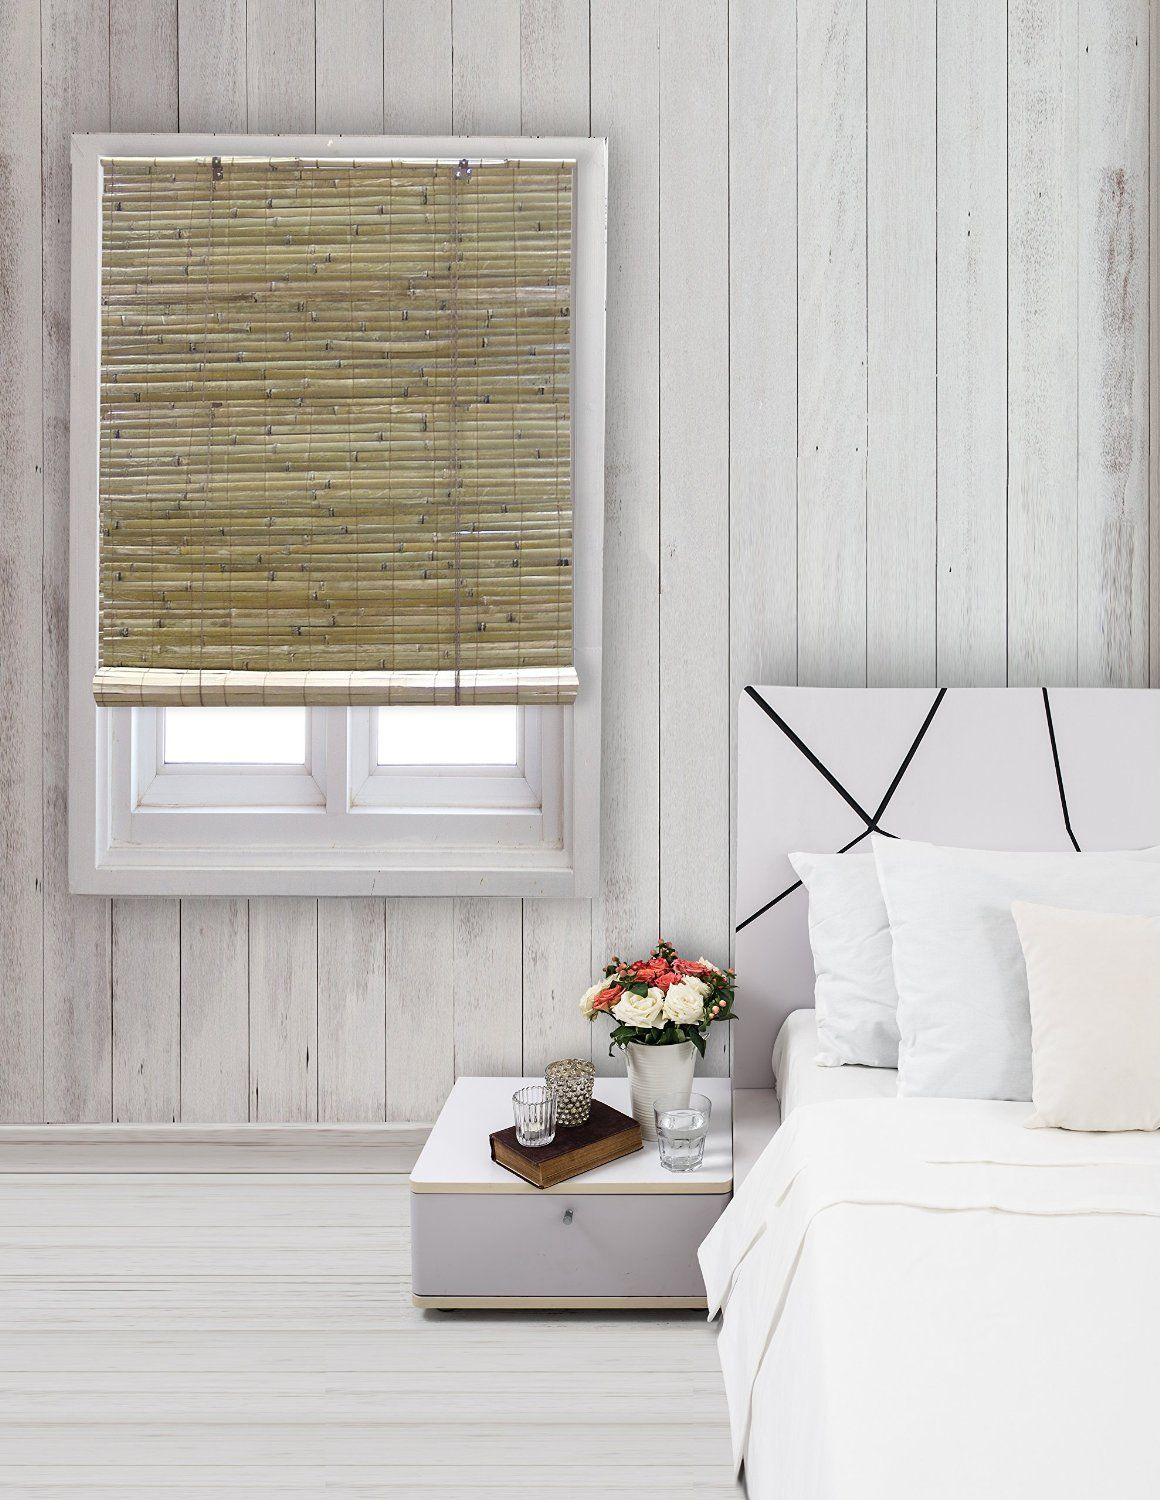 Window coverings types  amazon radiance  laguna bamboo shade roll up blind